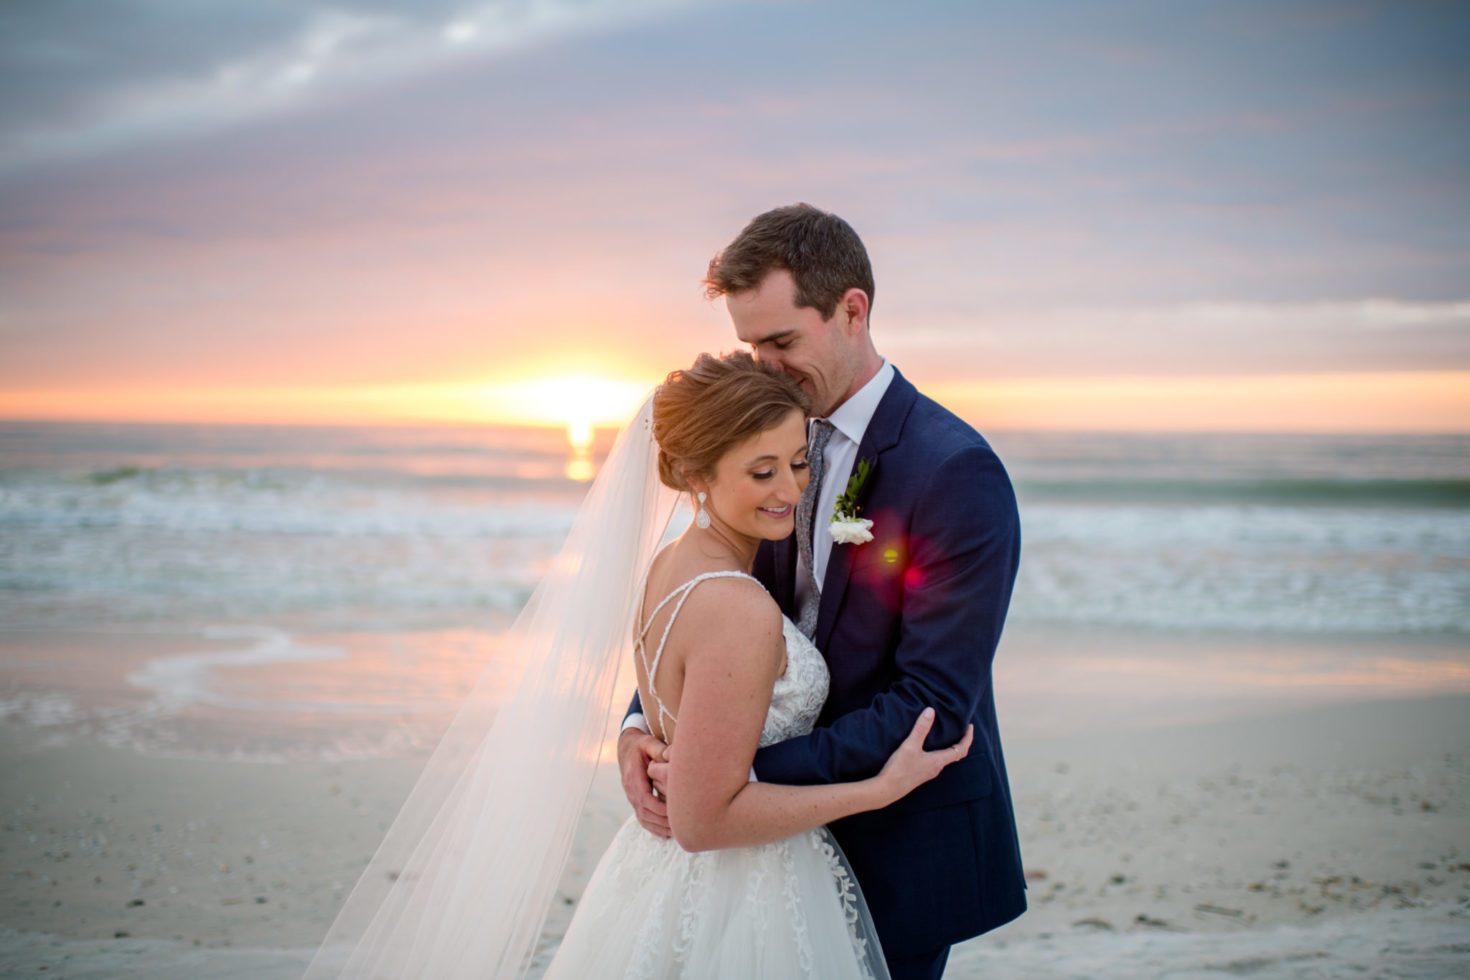 Cleveland Wedding Photography Destination Wedding sunset photo